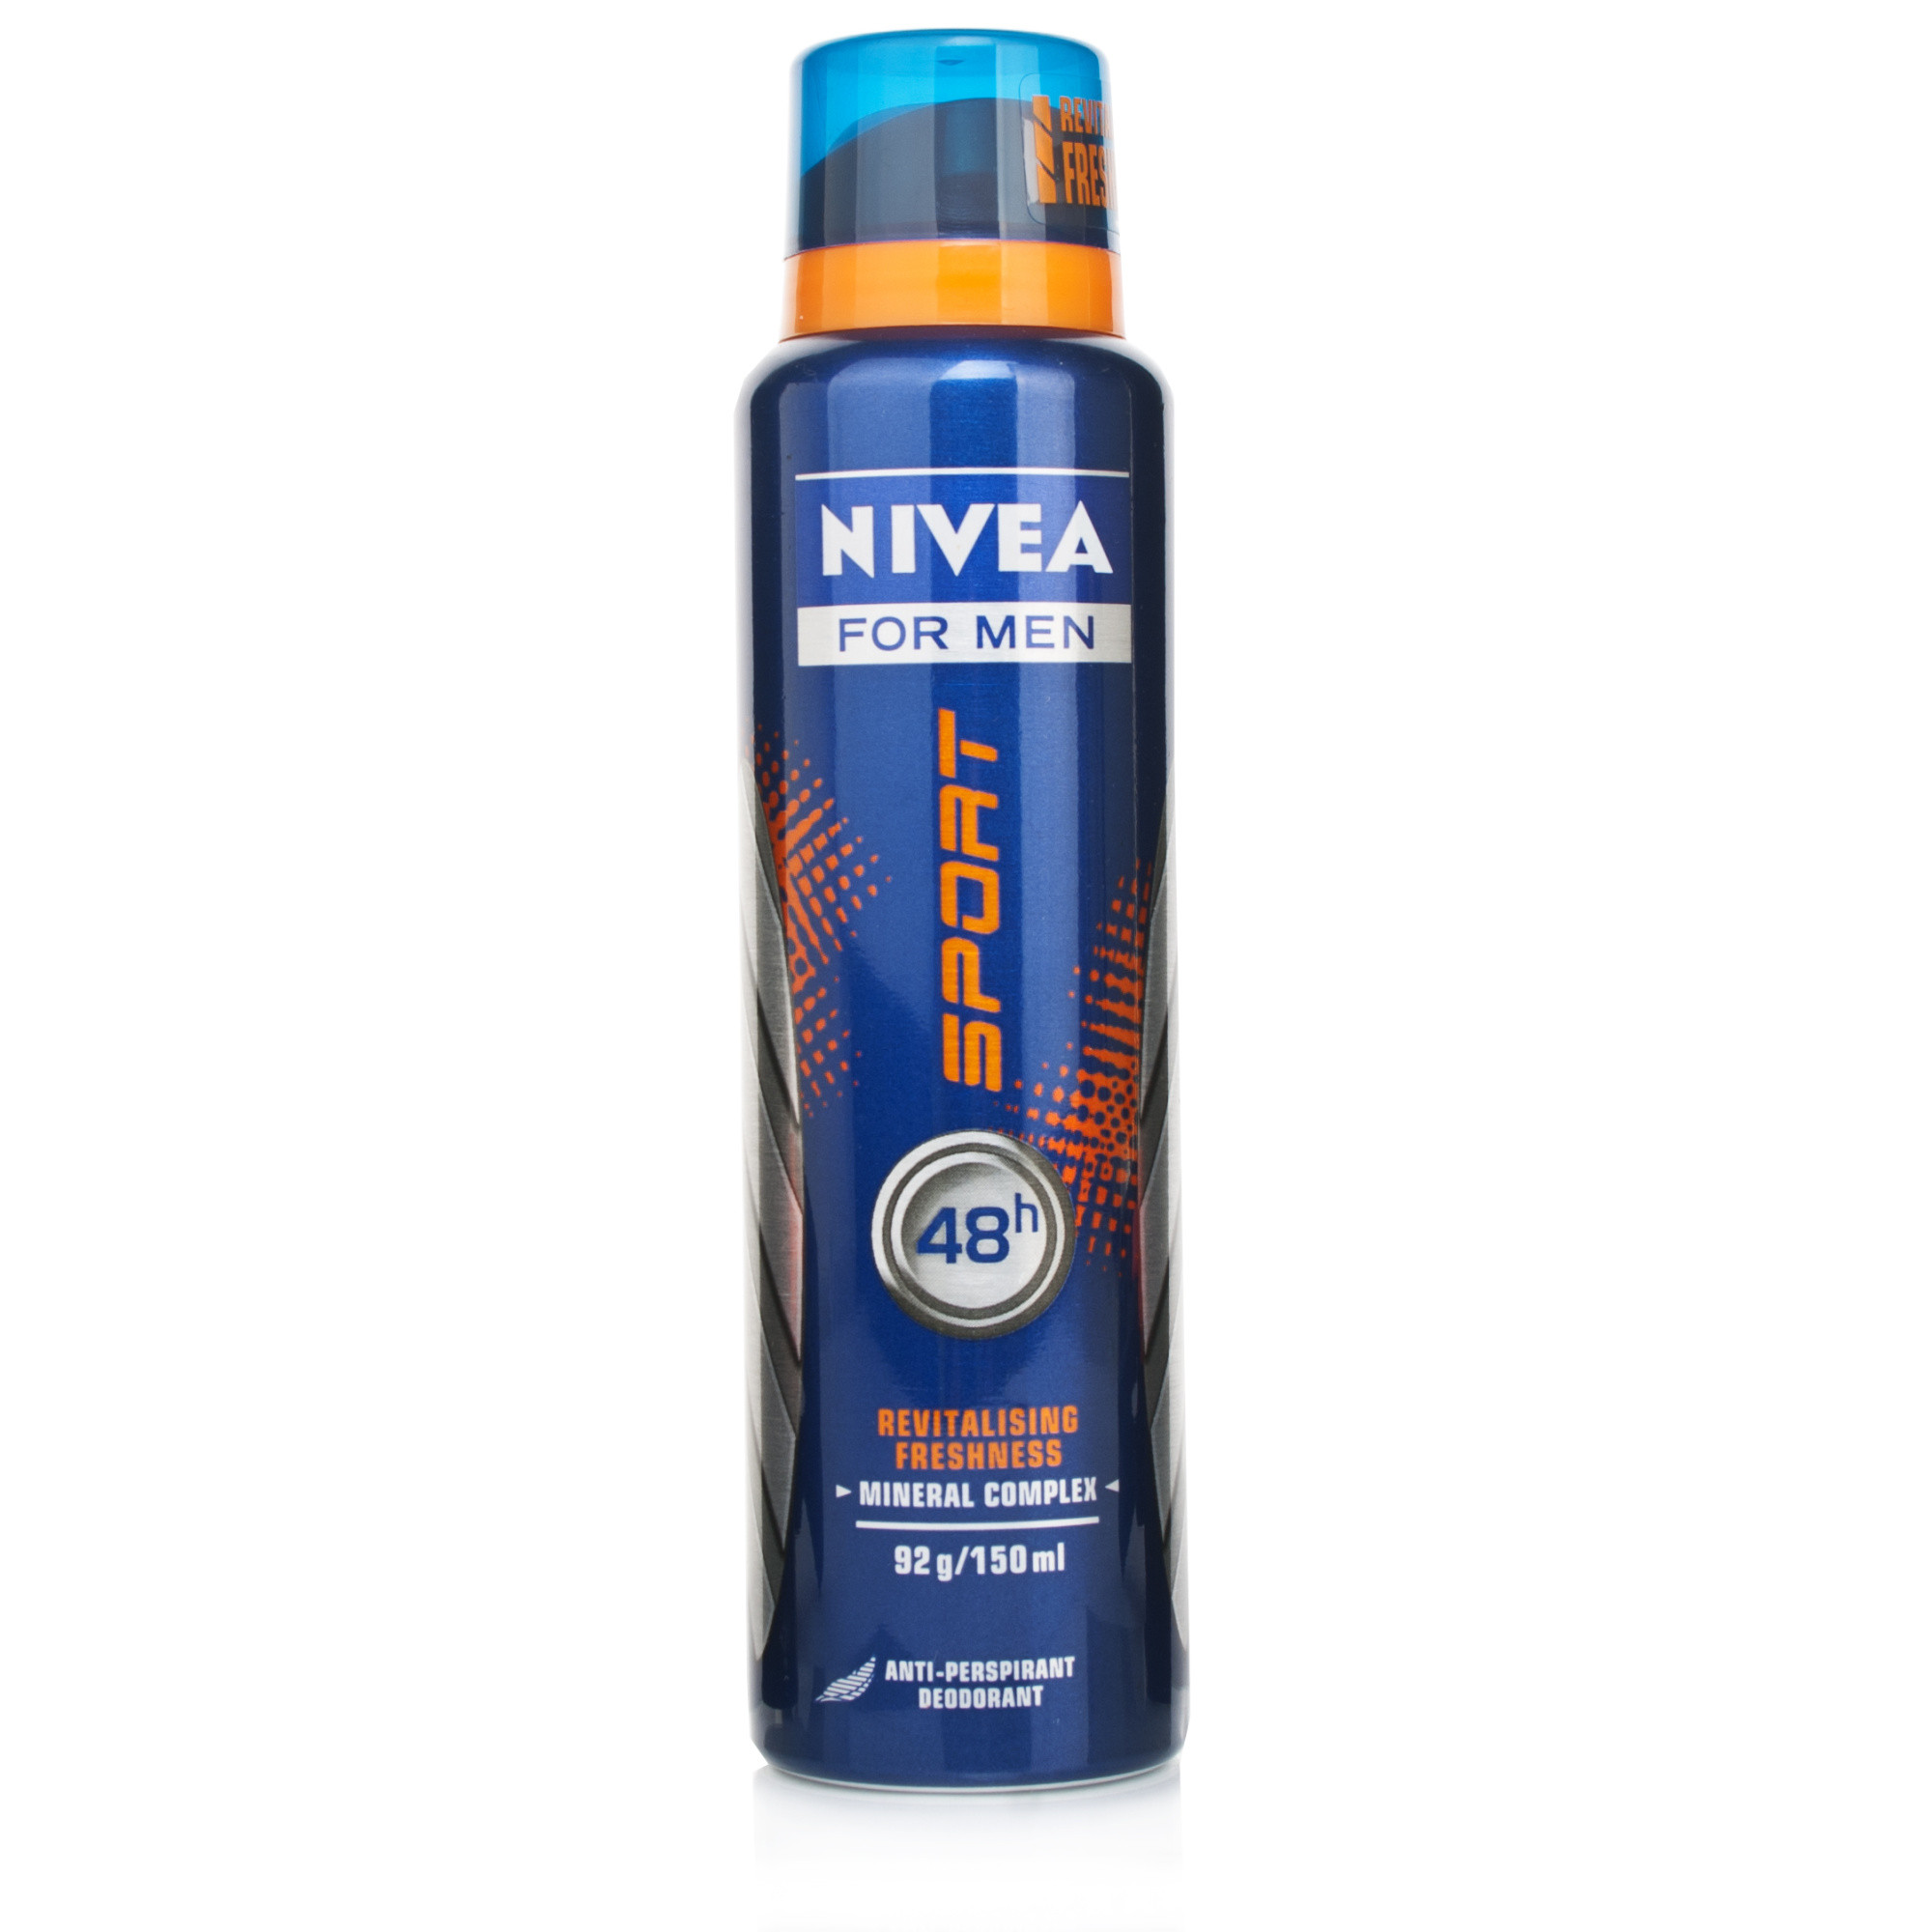 Nivea for Men Sport Deodorant Spray